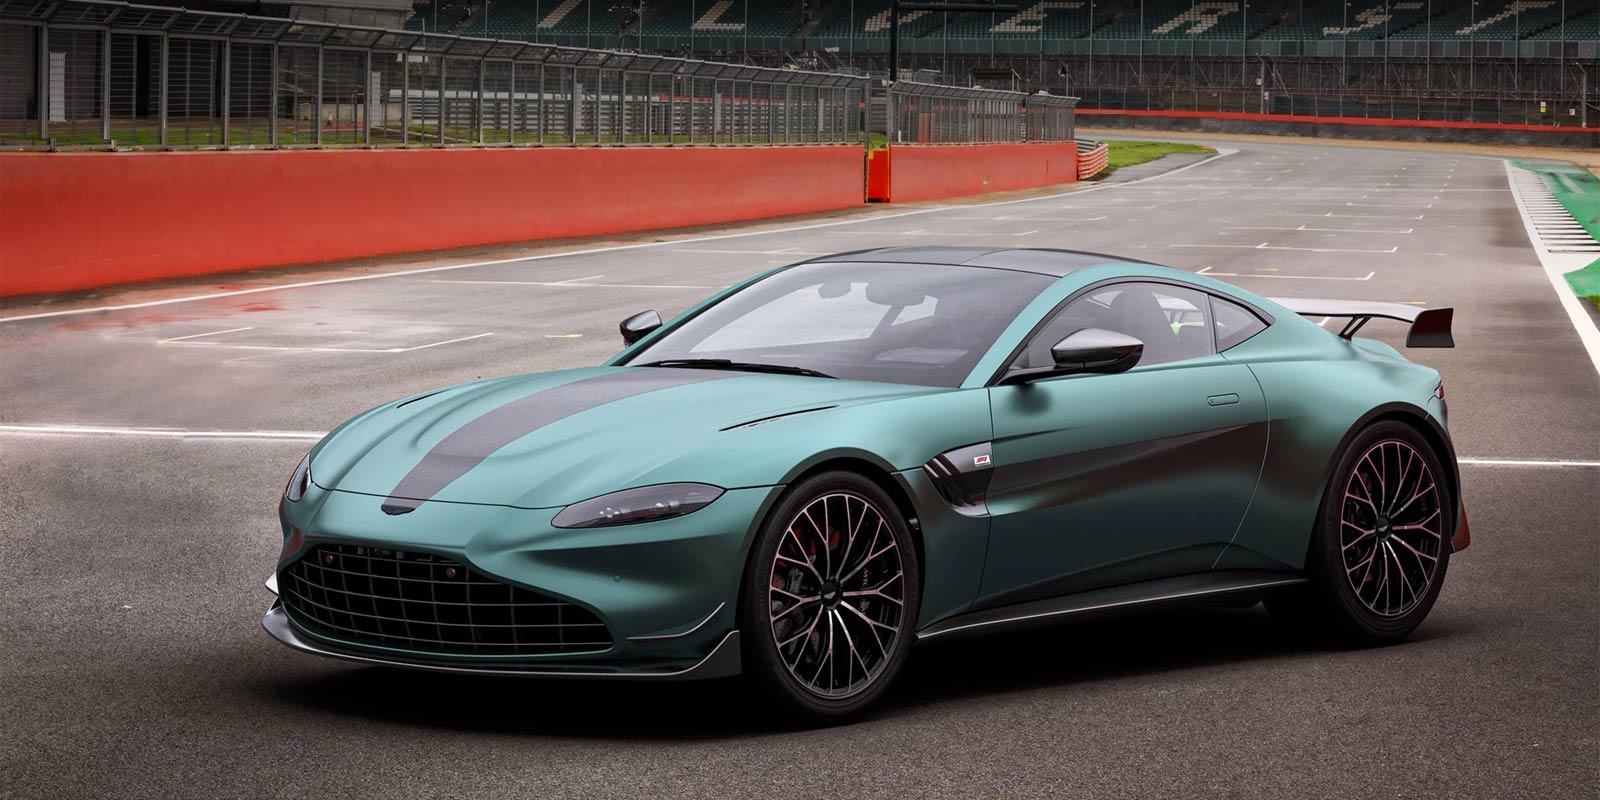 New Aston Martin Vantage F1 Edition at Grange